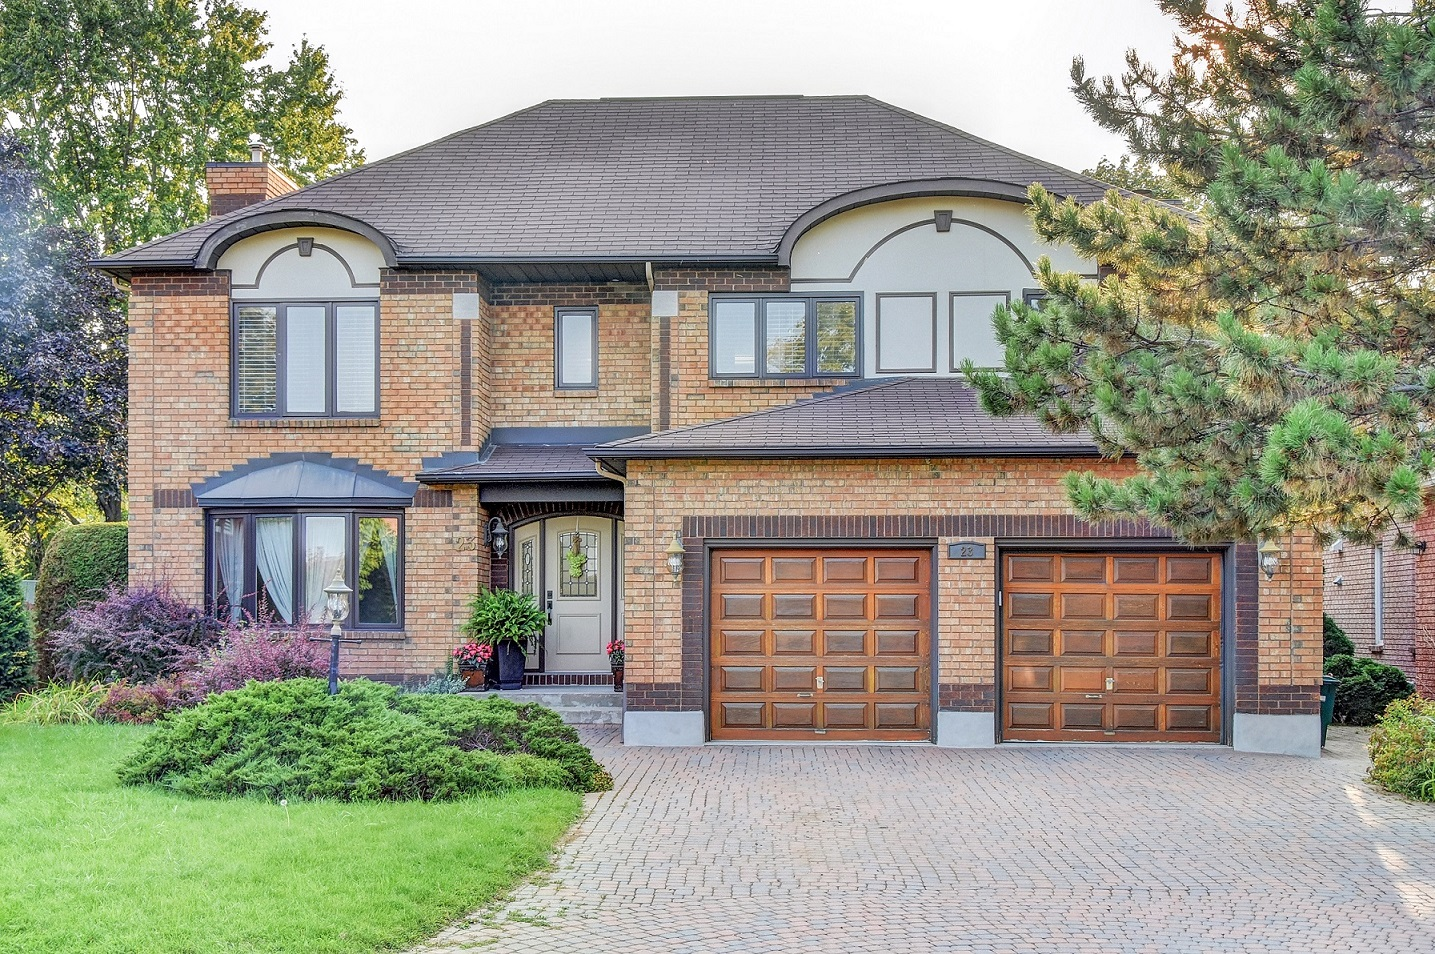 23 Hyde Park Way - Large and Spacious Detached Home with Fully Finished Basement in popular Centrepointe!